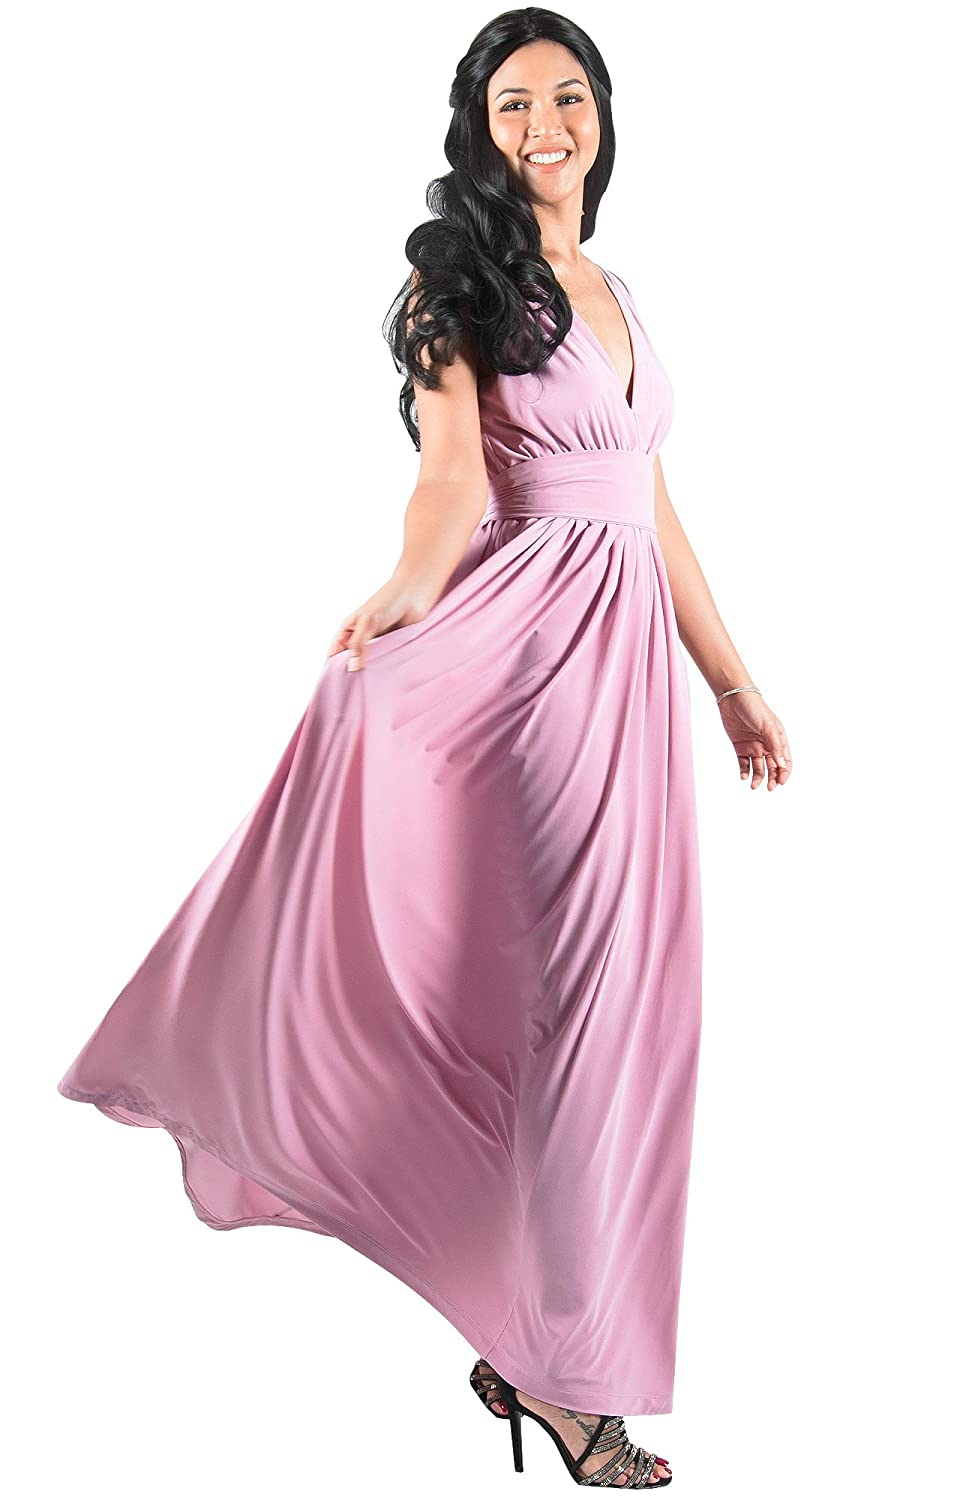 2f79d2aec93 Flattering and slimming plus sized maxi dresses and gowns  plus size  clothing for women  sleeveless maxi s for the curvaceous woman  larger size  floor ...